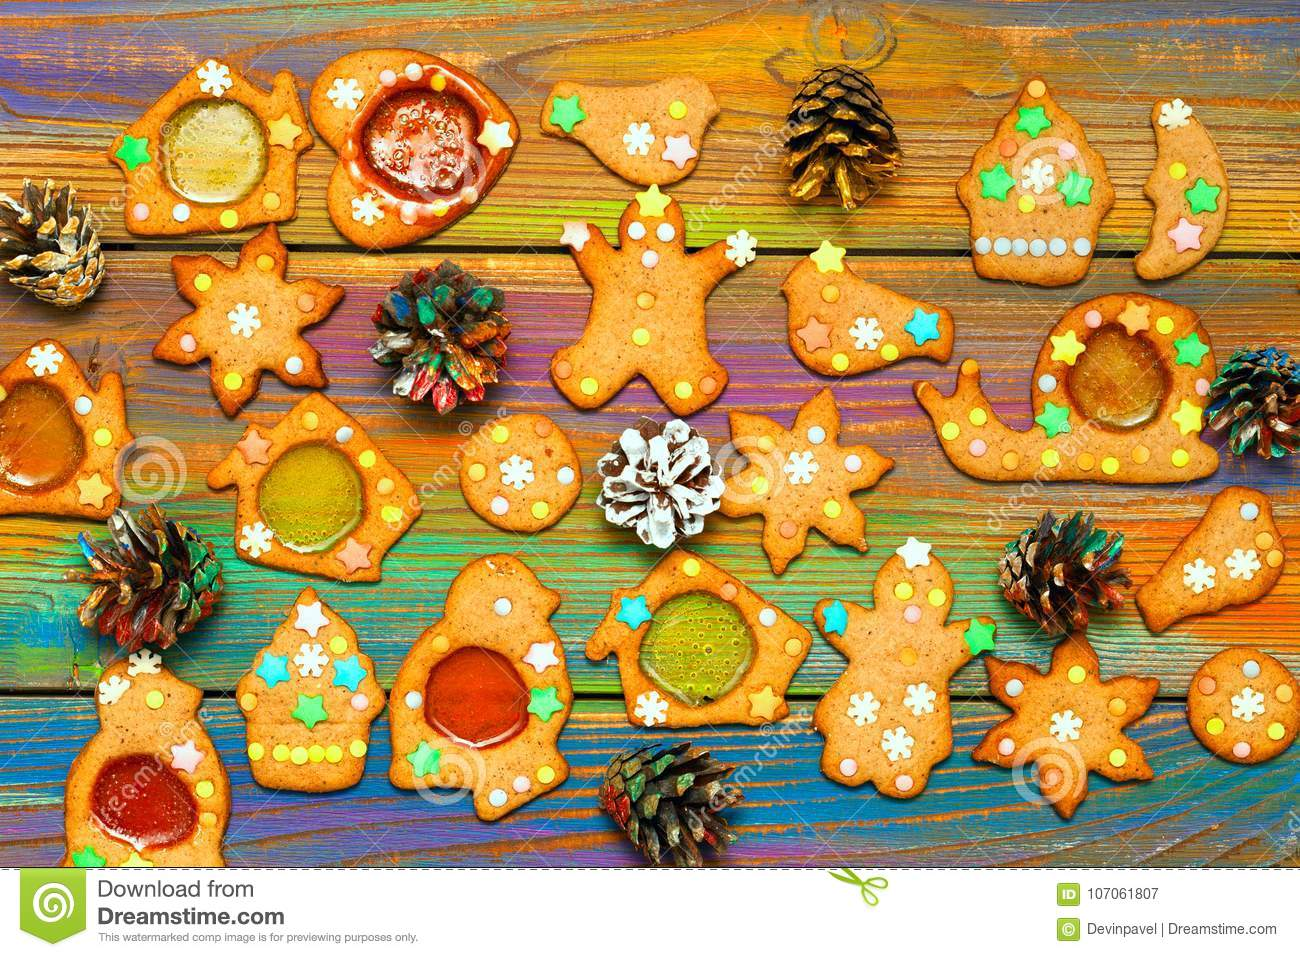 Ginger biscuits and decorative Christmas cones. Christmas festive bright background. Food and sweets